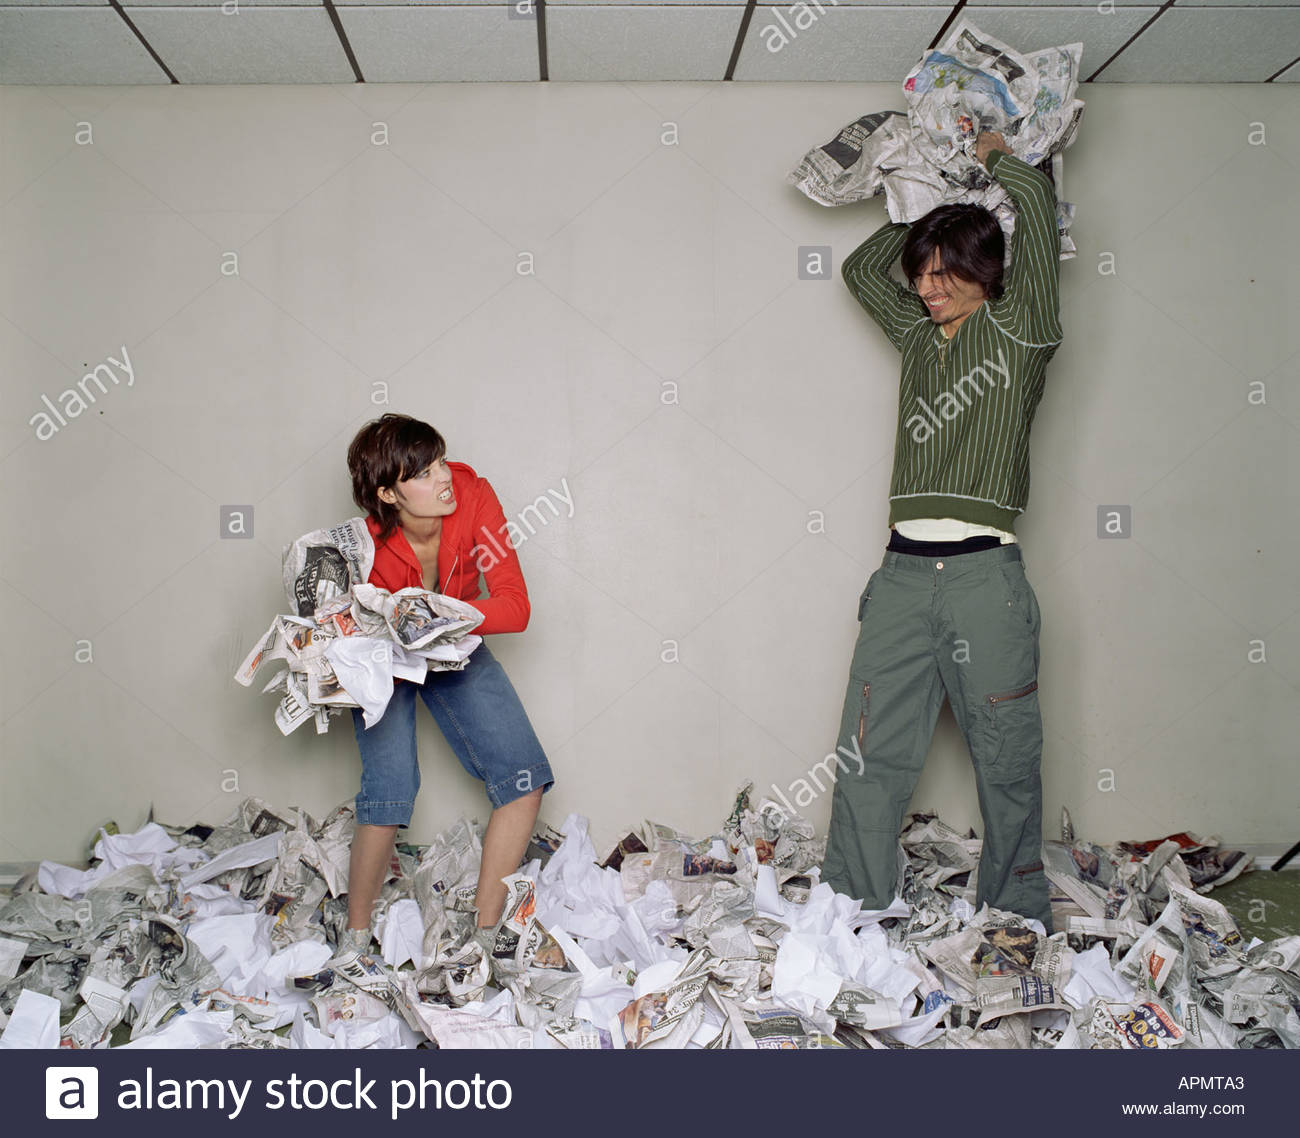 Two people playfighting with newspaper - Stock Image